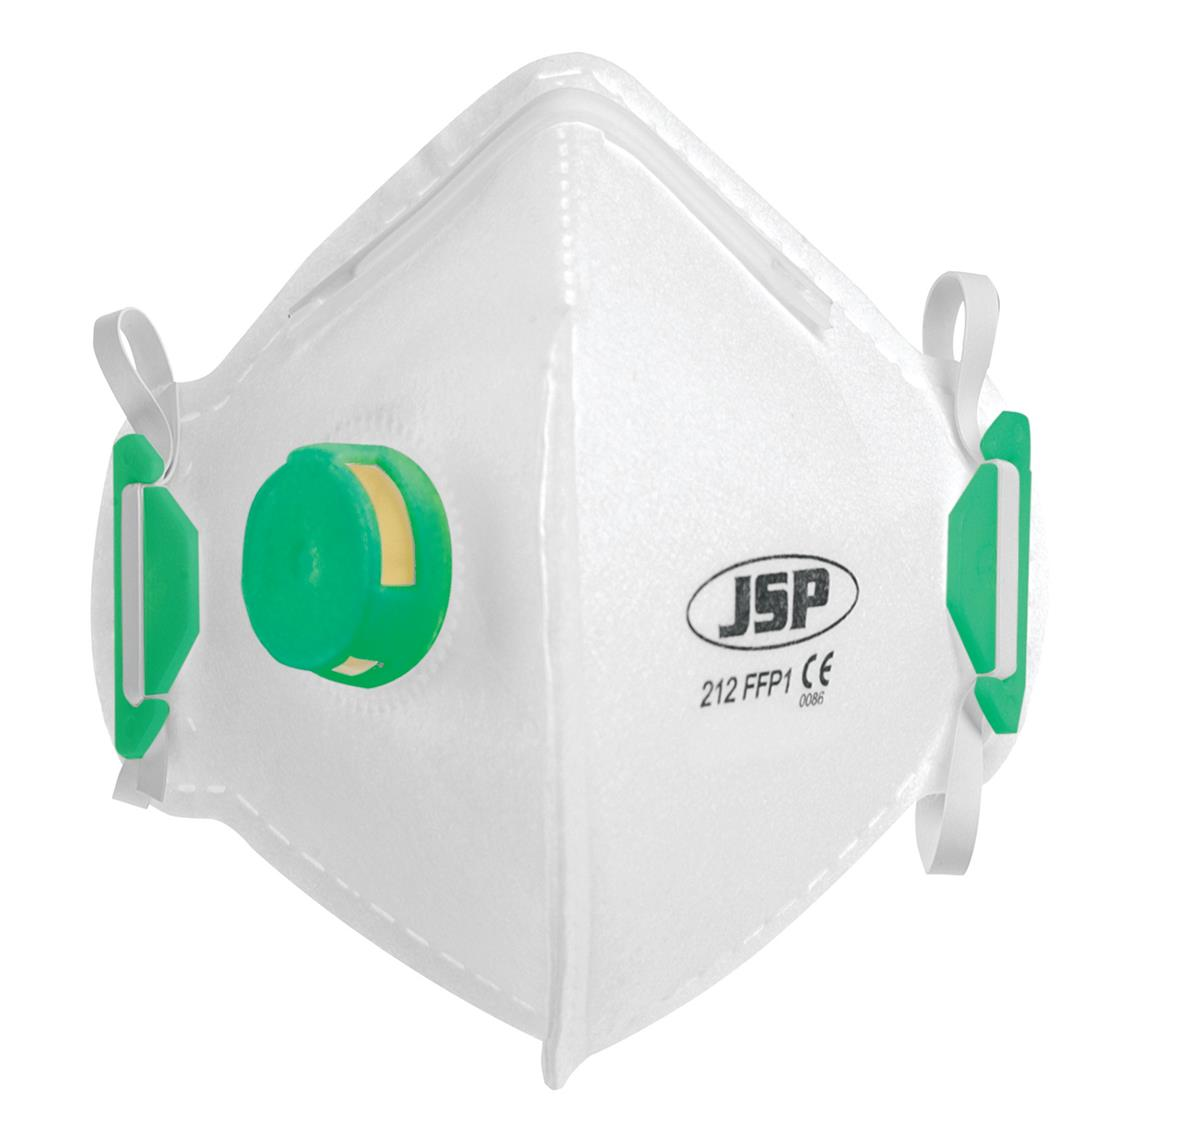 JSP Disposable Mask Valved Fold-flat FFP1 Class 1 EN149:2001 & A1:2009 Standard Ref BEB110-101-000